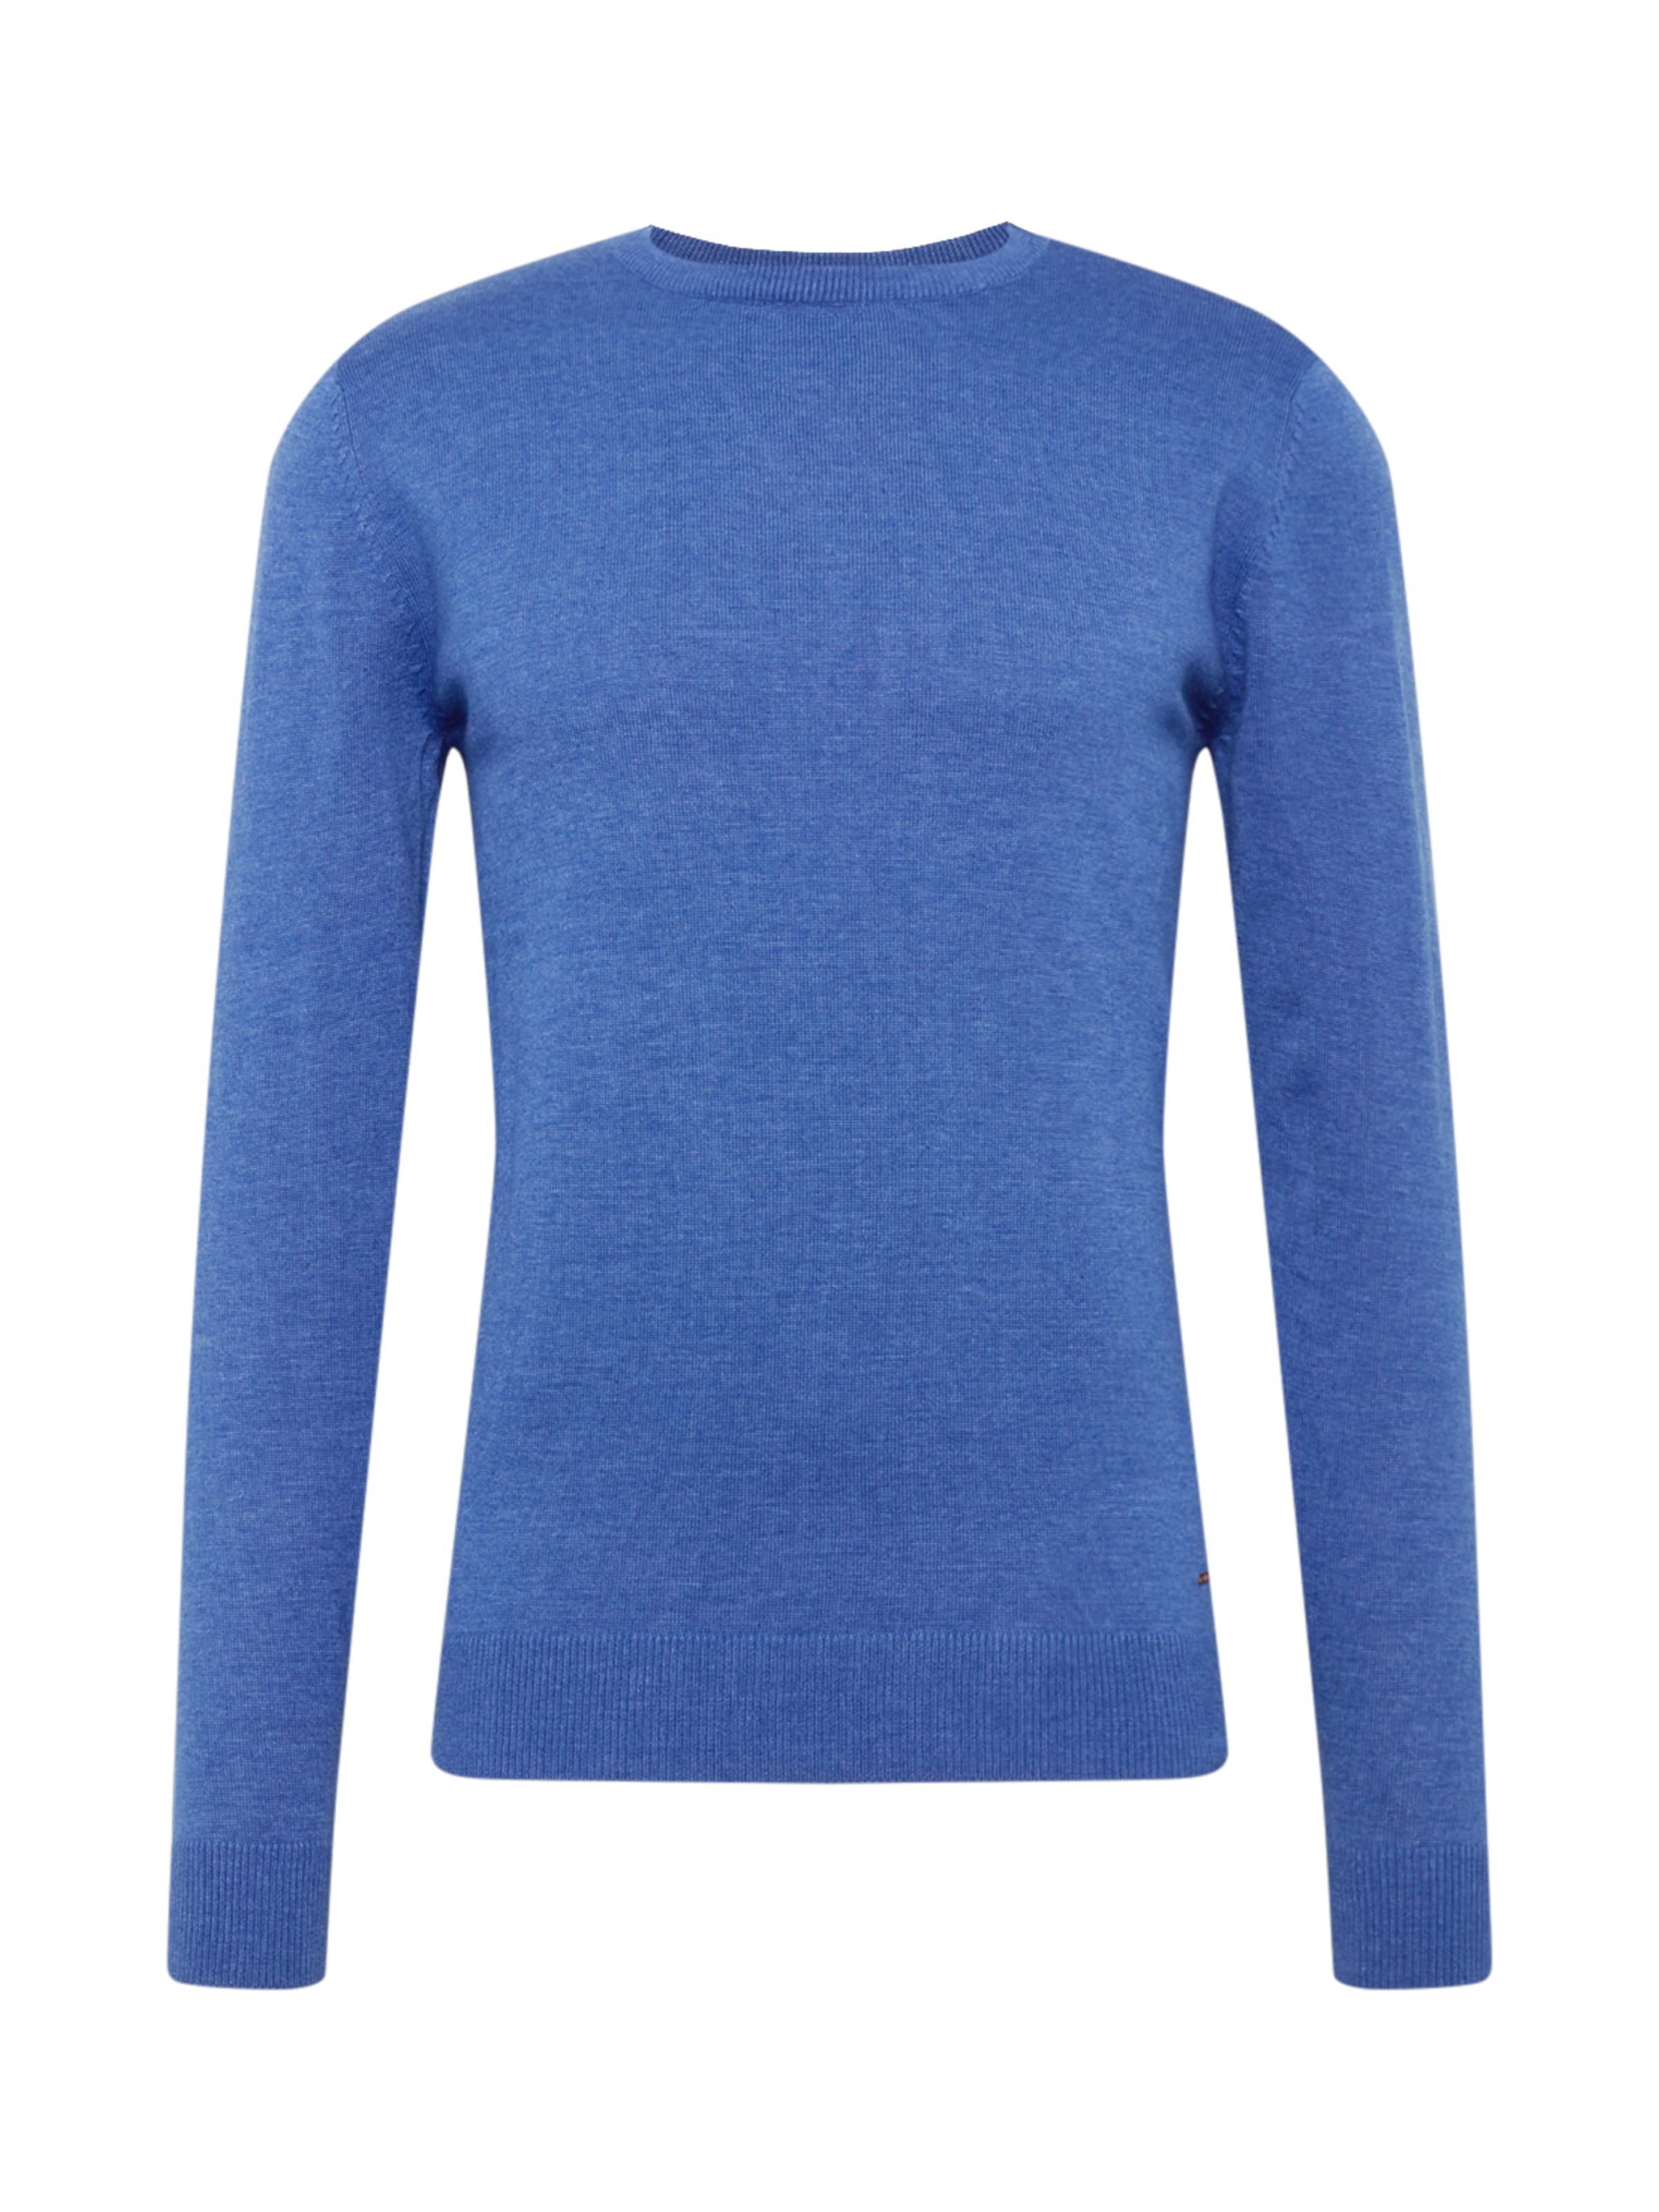 Pullover Industries Blau Petrol In ARL35jqcS4